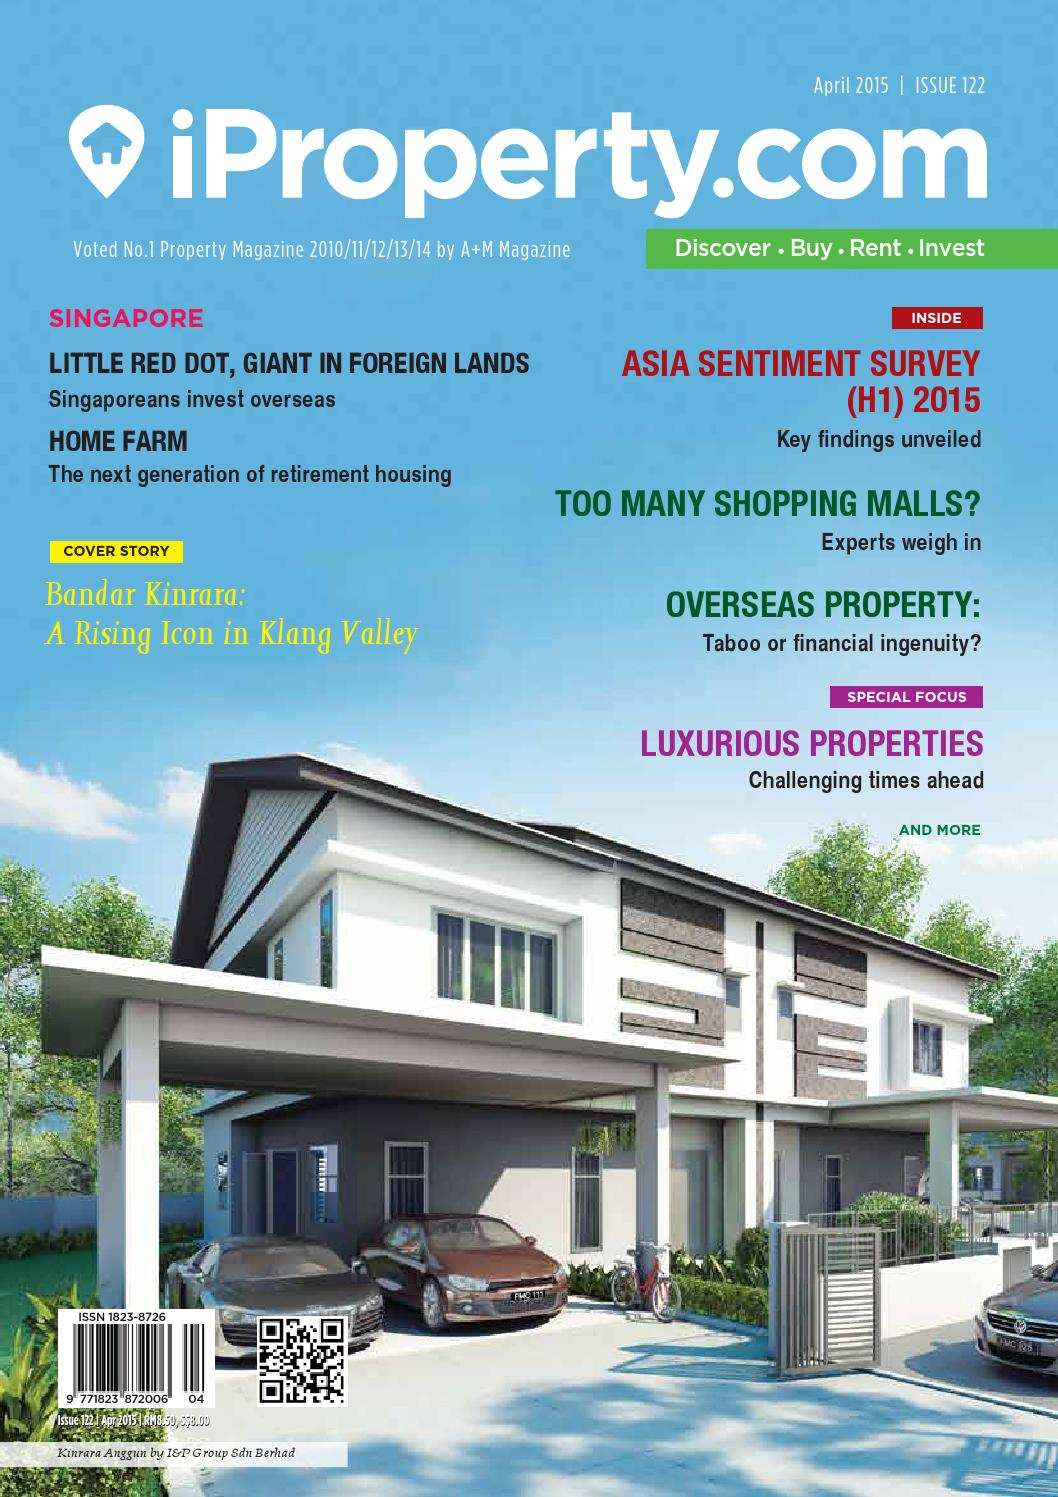 iProperty.com Issue 122 (April 2015) by iproperty.com - issuu